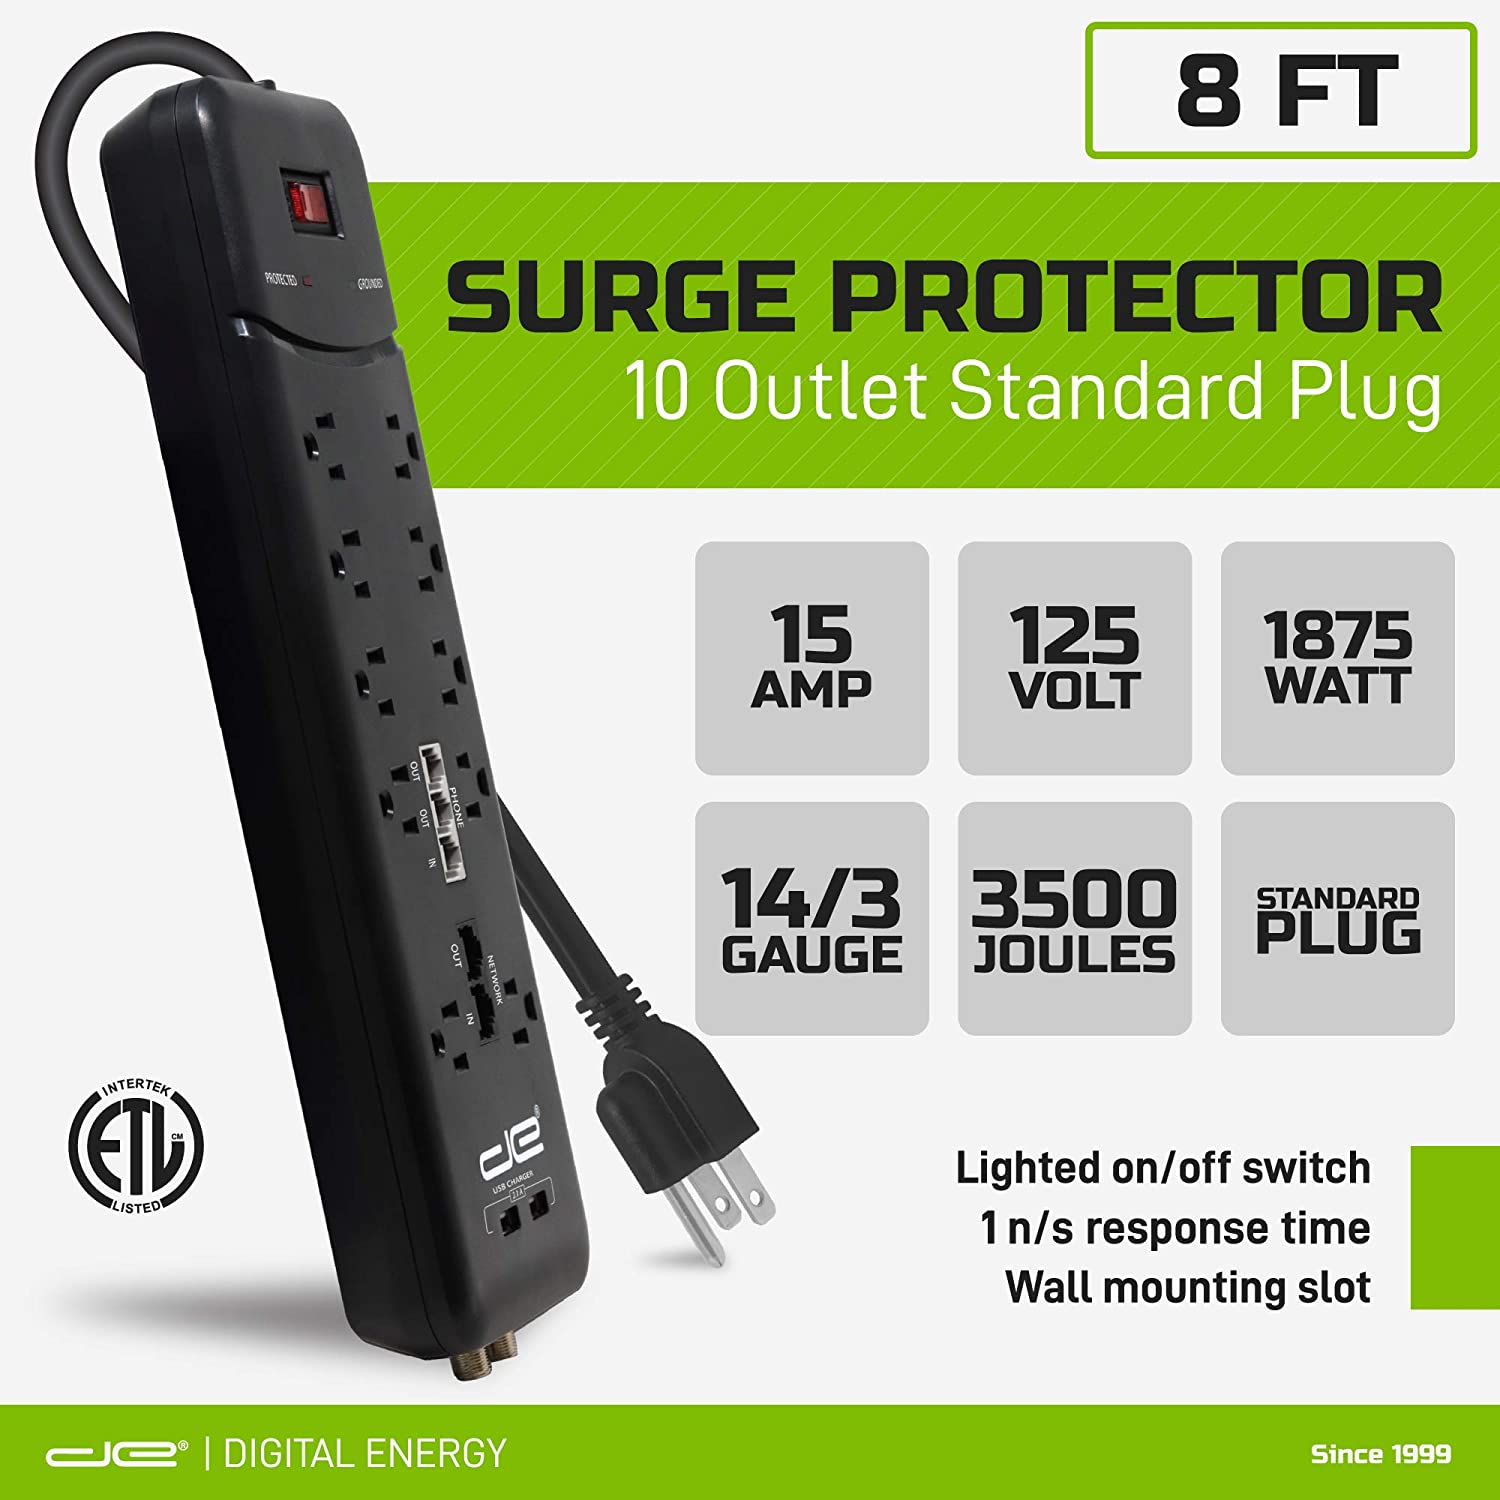 Digital Energy 8-ft Heavy Duty 10-Outlet 3500 Joules Surge Protector Power Strip, 8 Foot Long Extension Cord, Two USB Charging Ports, Coaxial, Phone Protection, ETL Listed. 15 AMP, Black